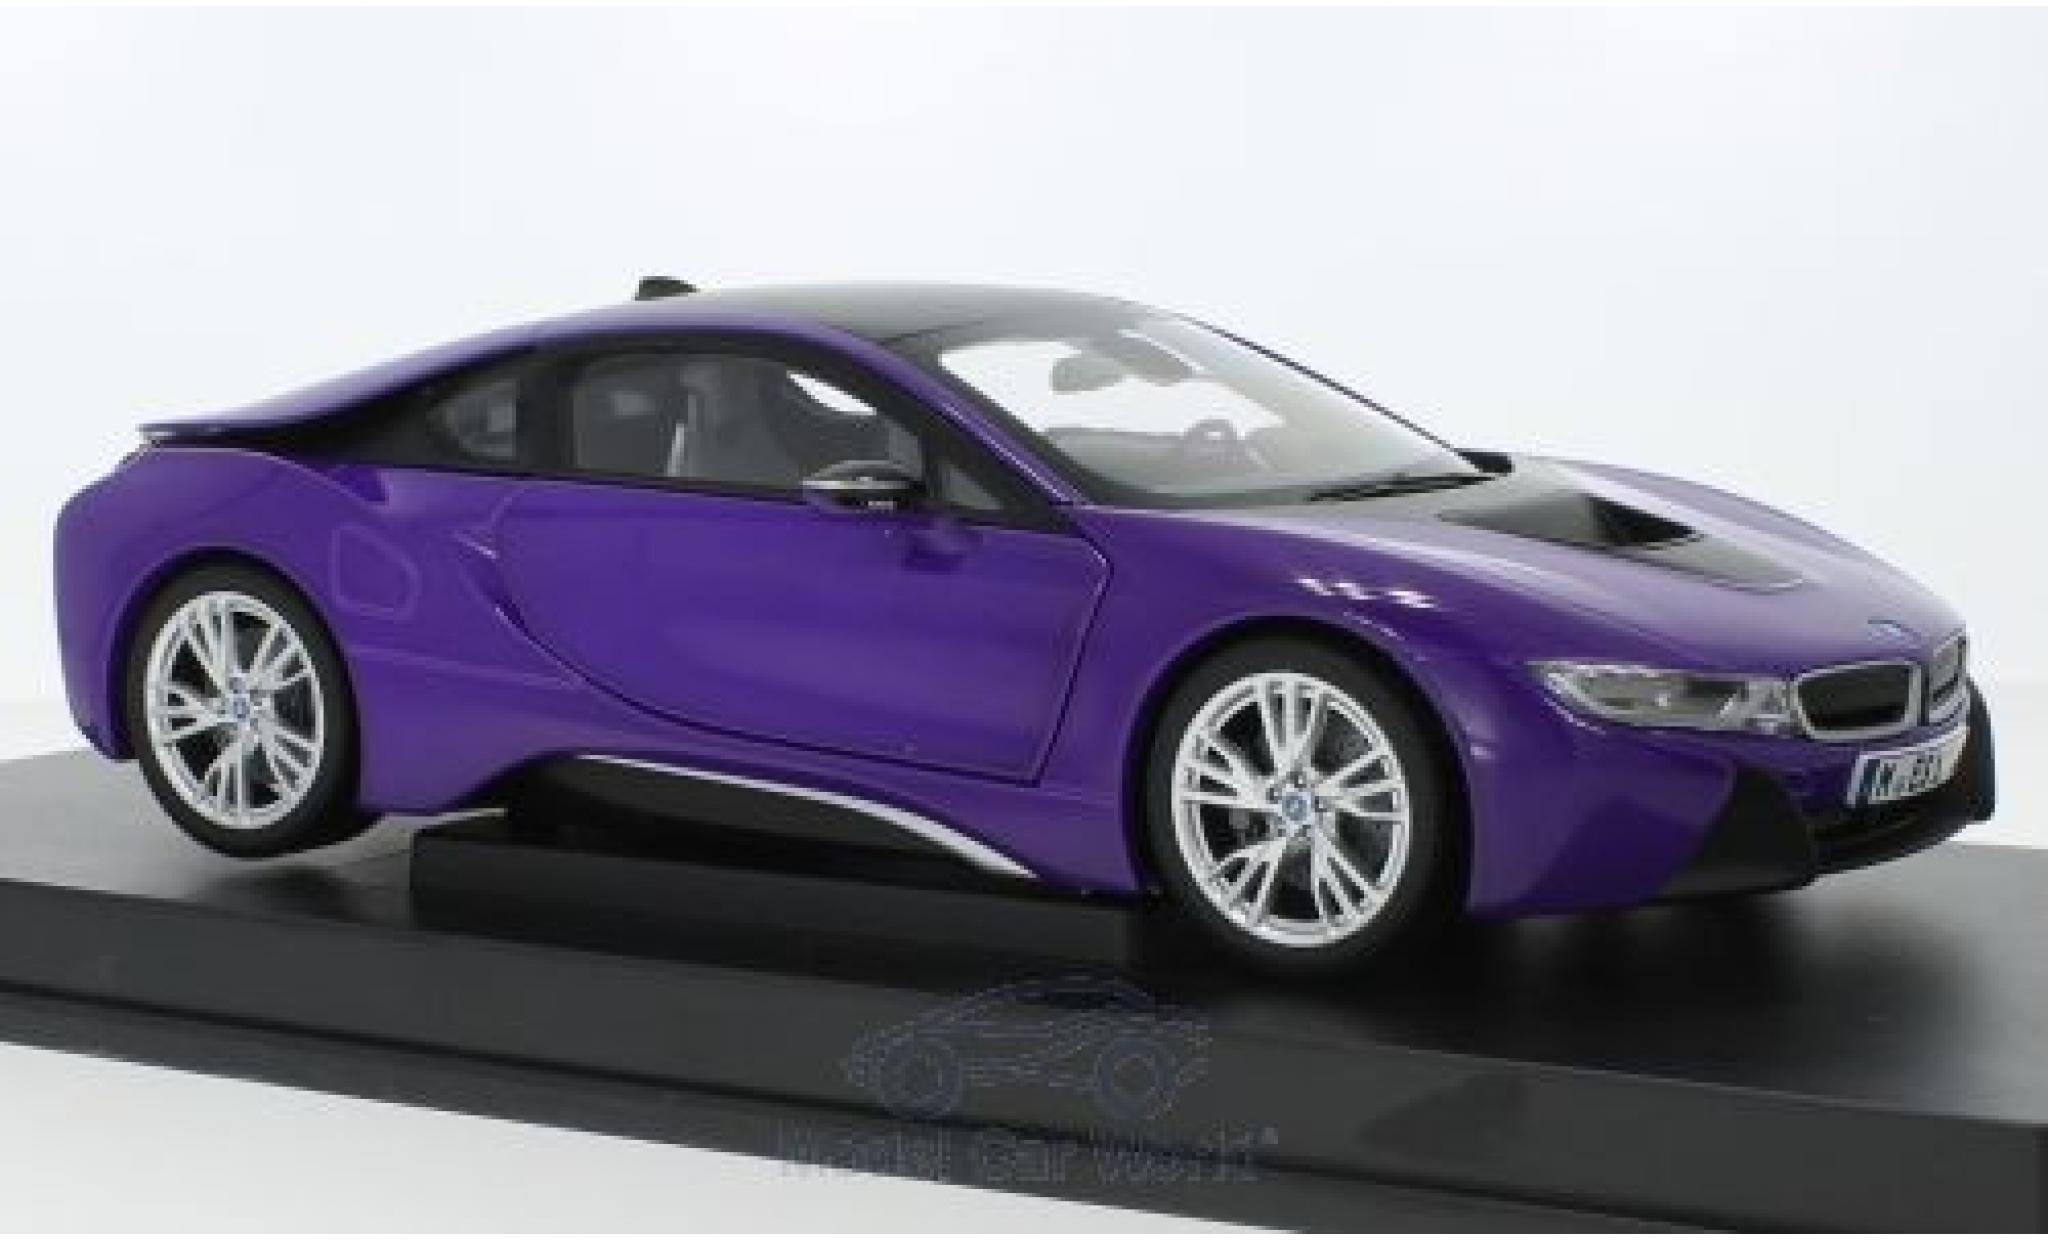 Bmw i8 1/18 Paragon purple